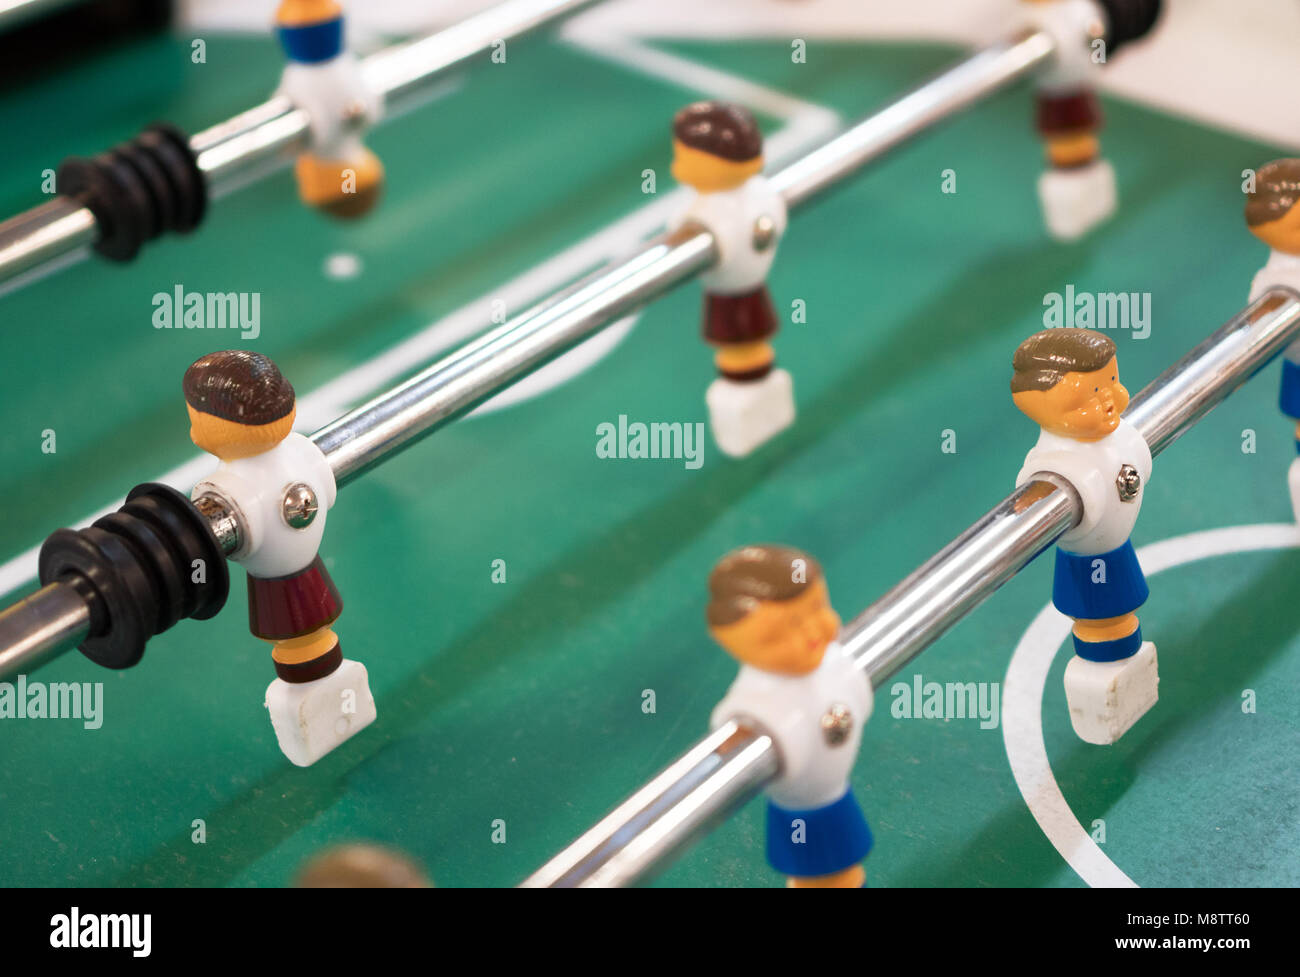 Table football game in kids playroom. - Stock Image